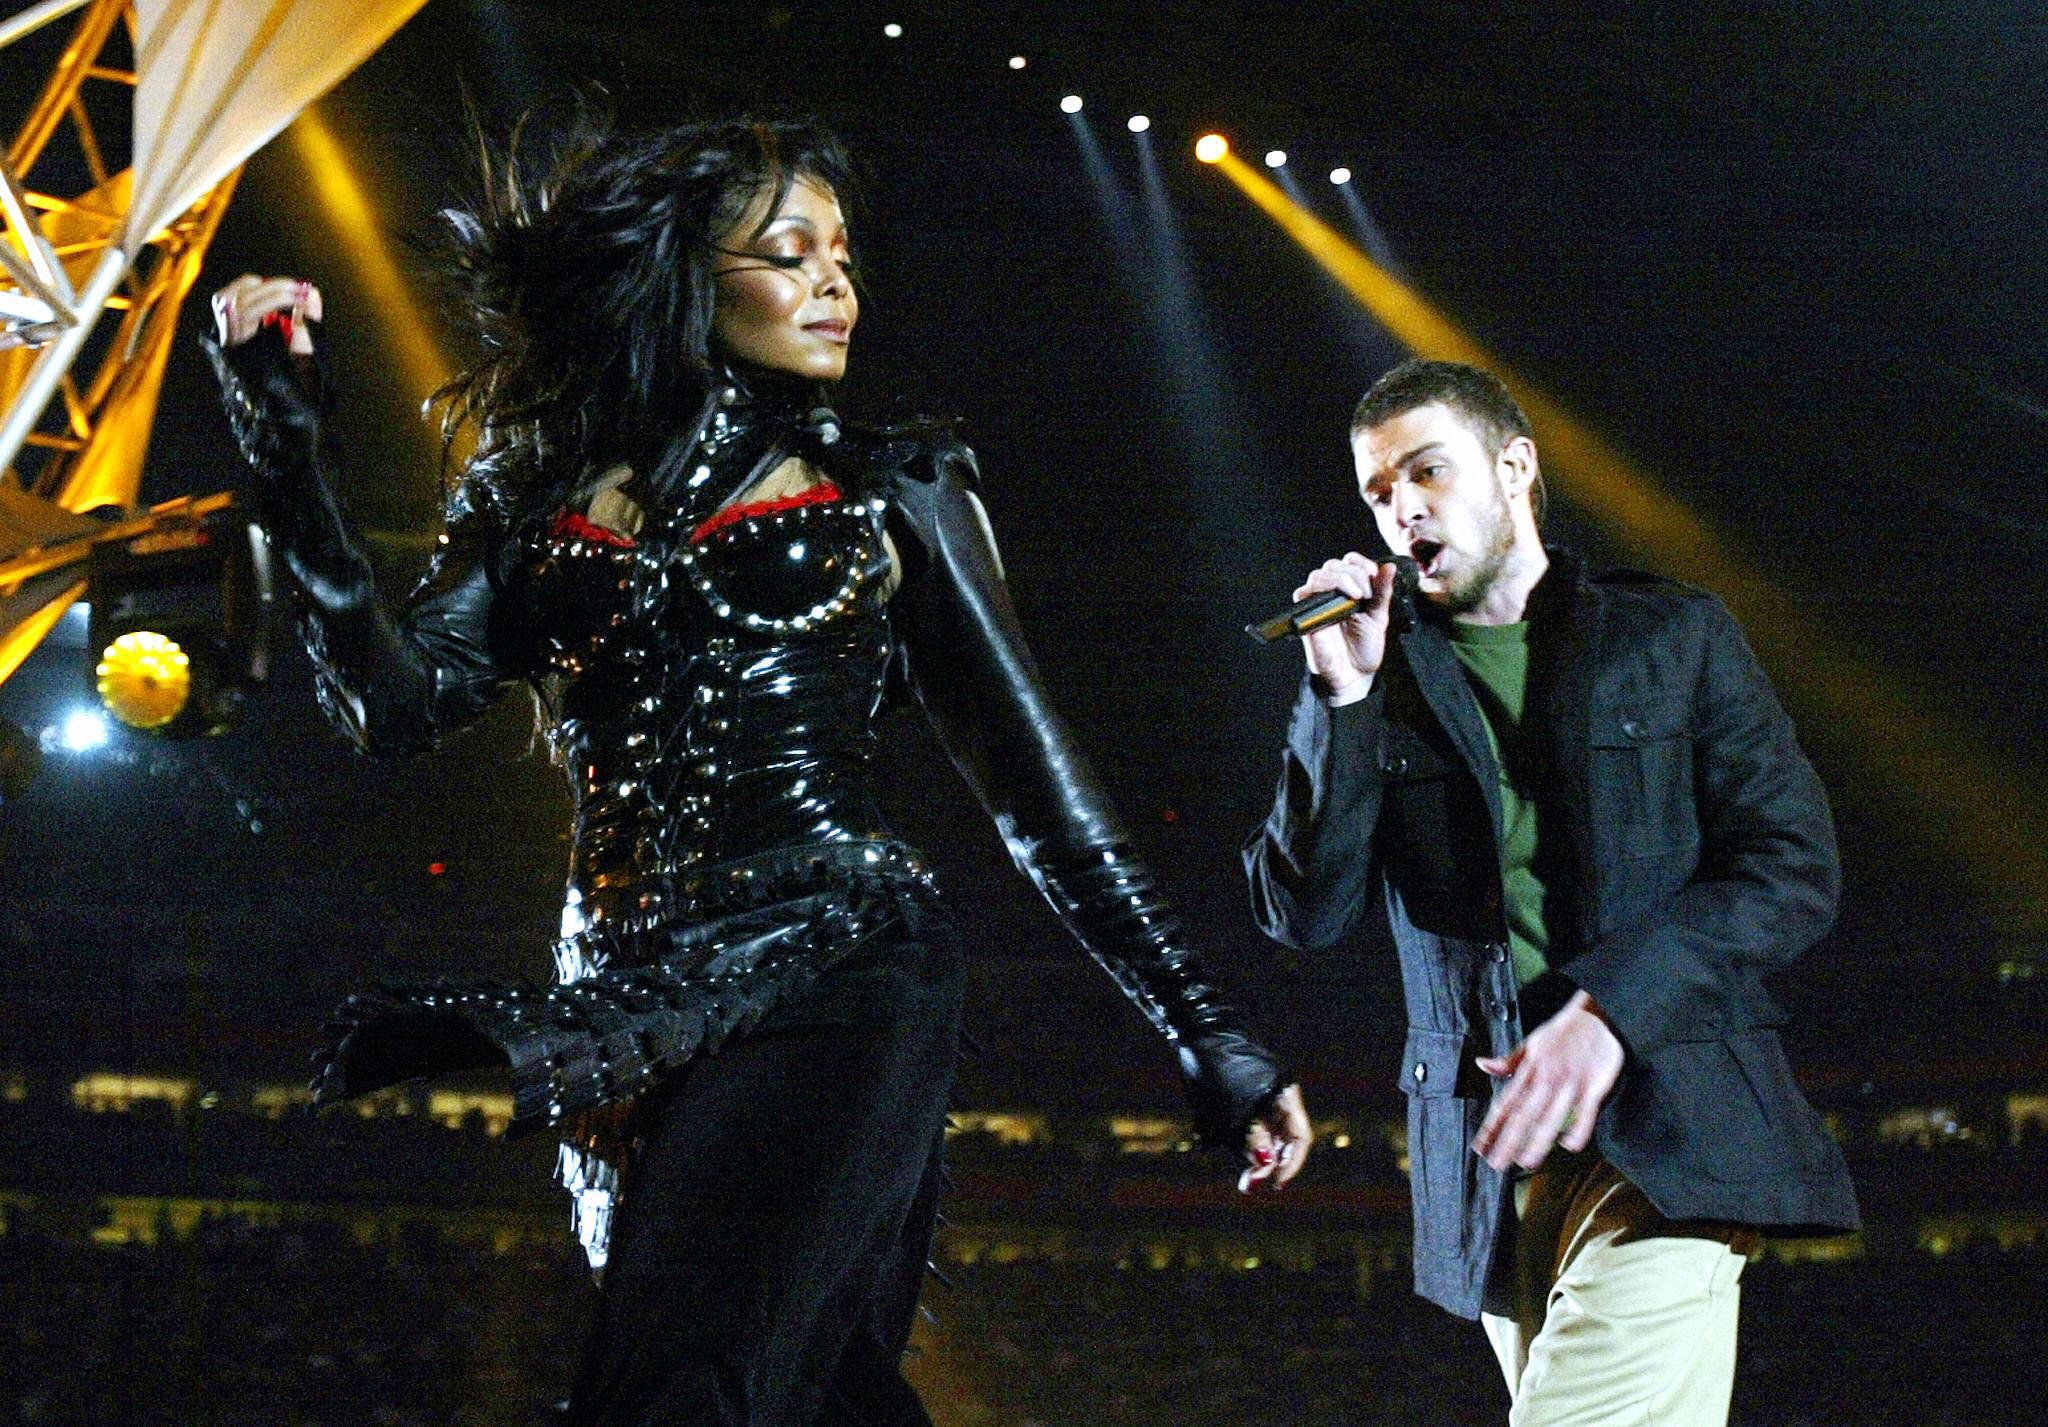 Janet Jackson and Justin Timberlake perform at Super Bowl XXXVIII on Feb. 1, 2004.